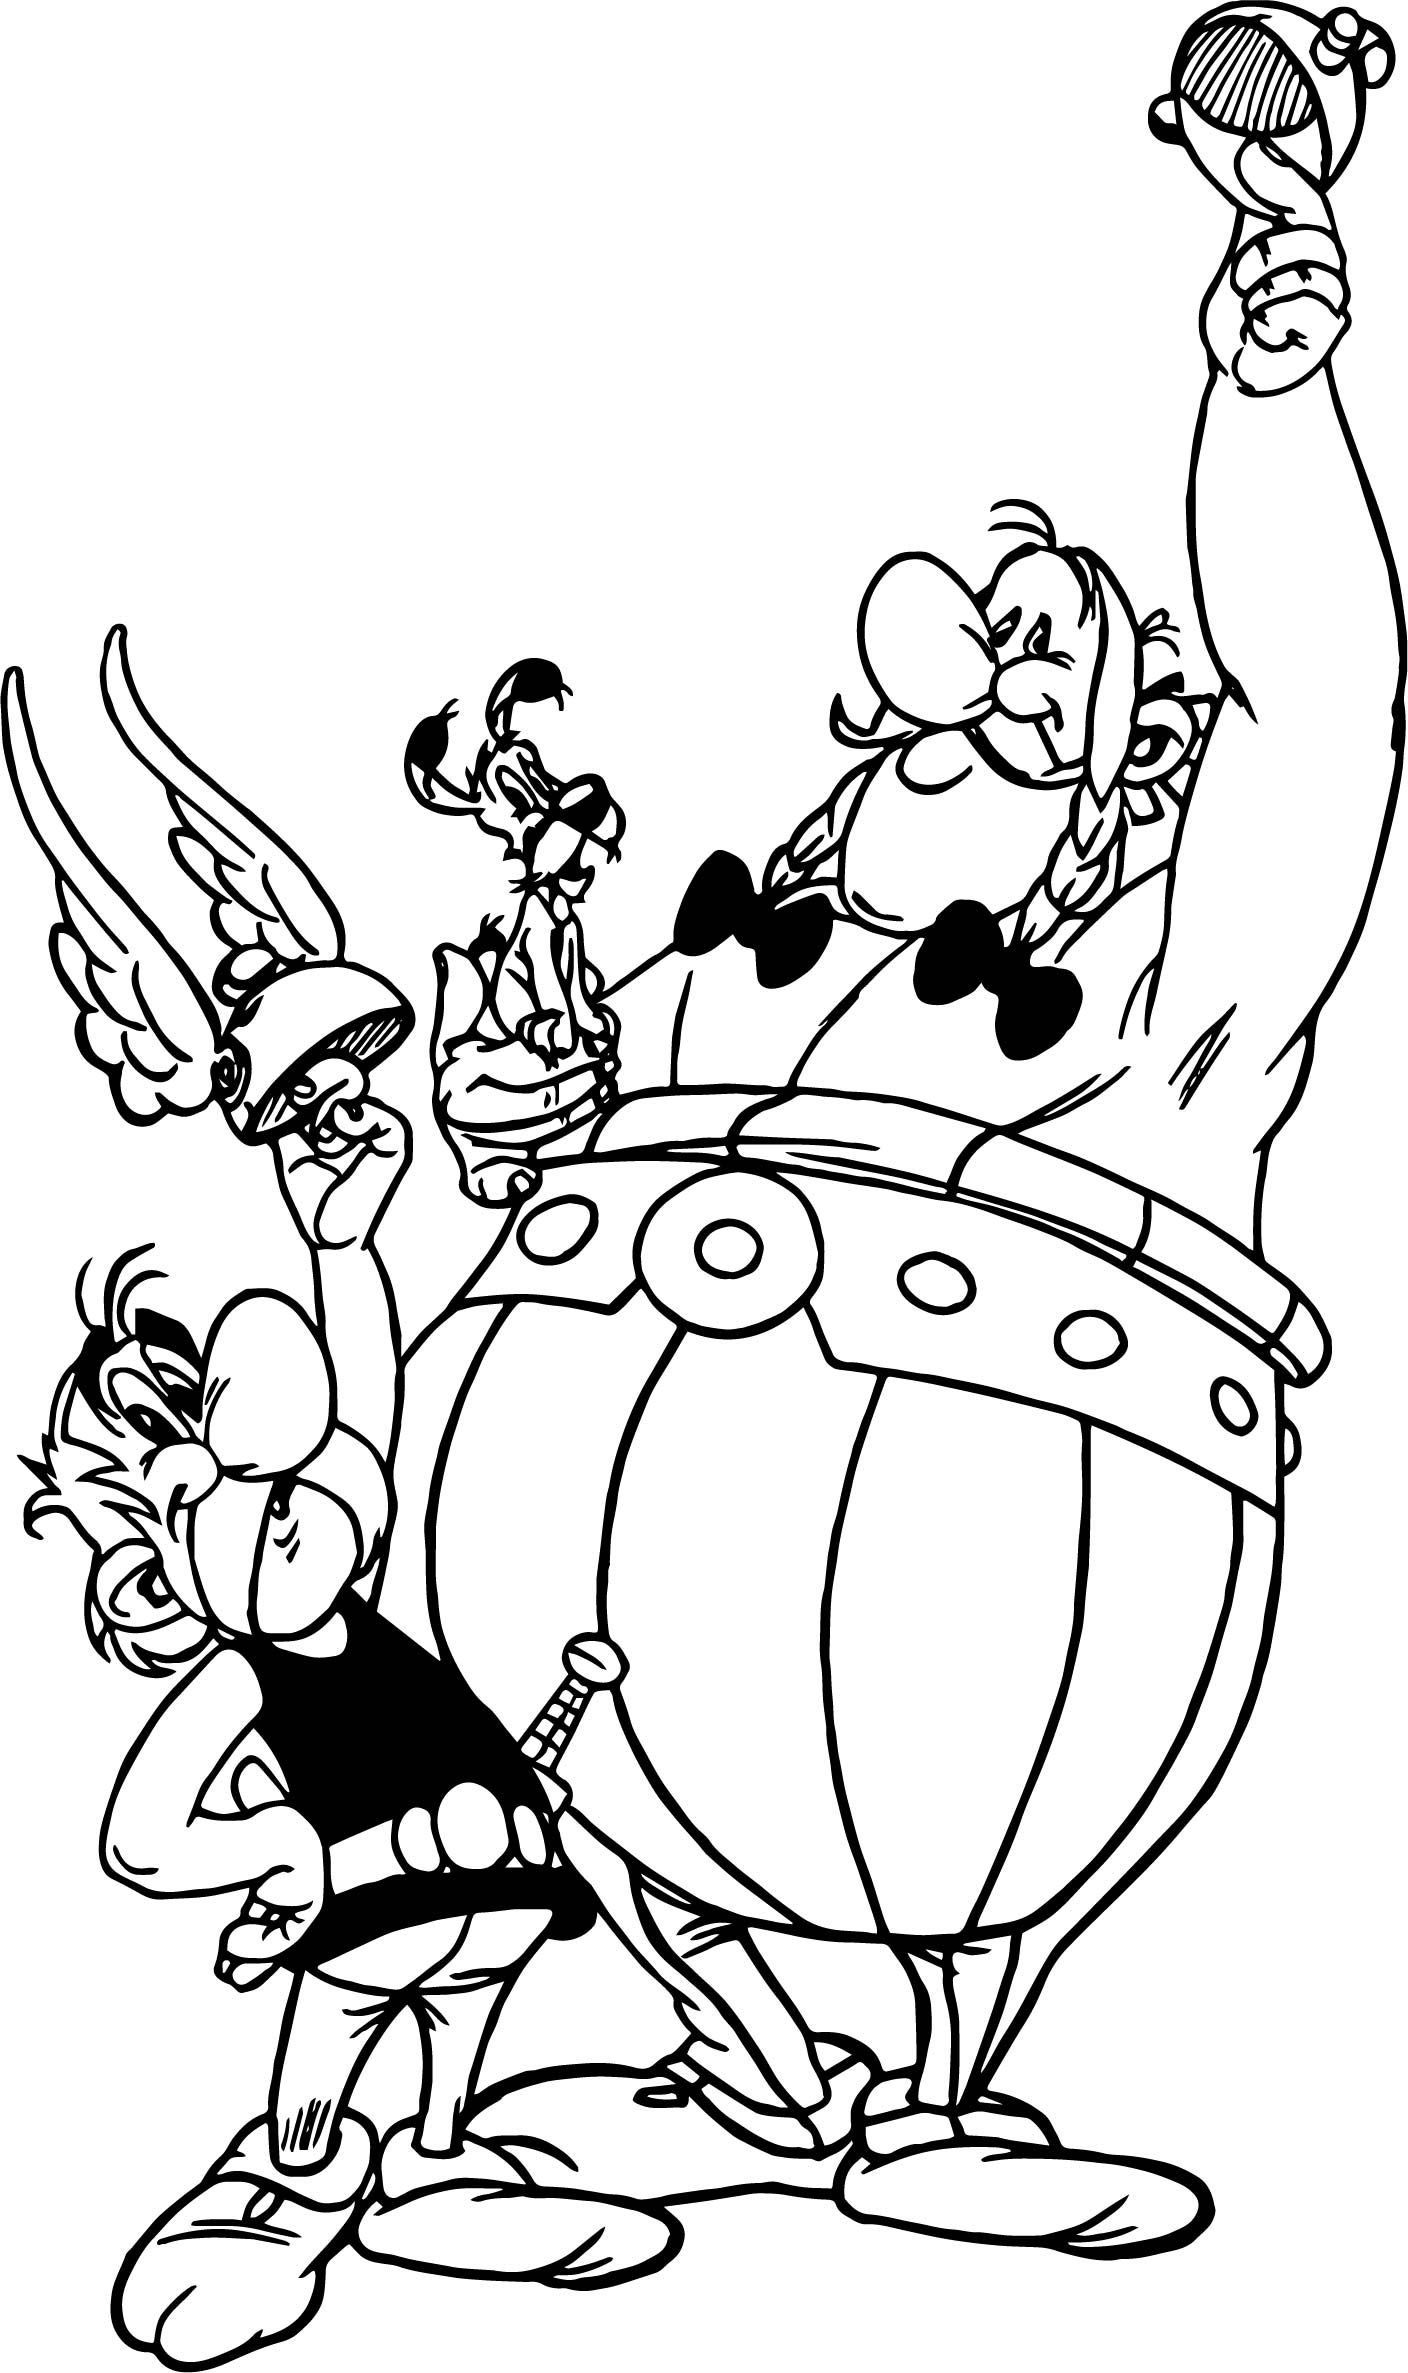 Awesome Asterix Obelix Dog Winner Coloring Page Coloring Pages Art Art Drawings